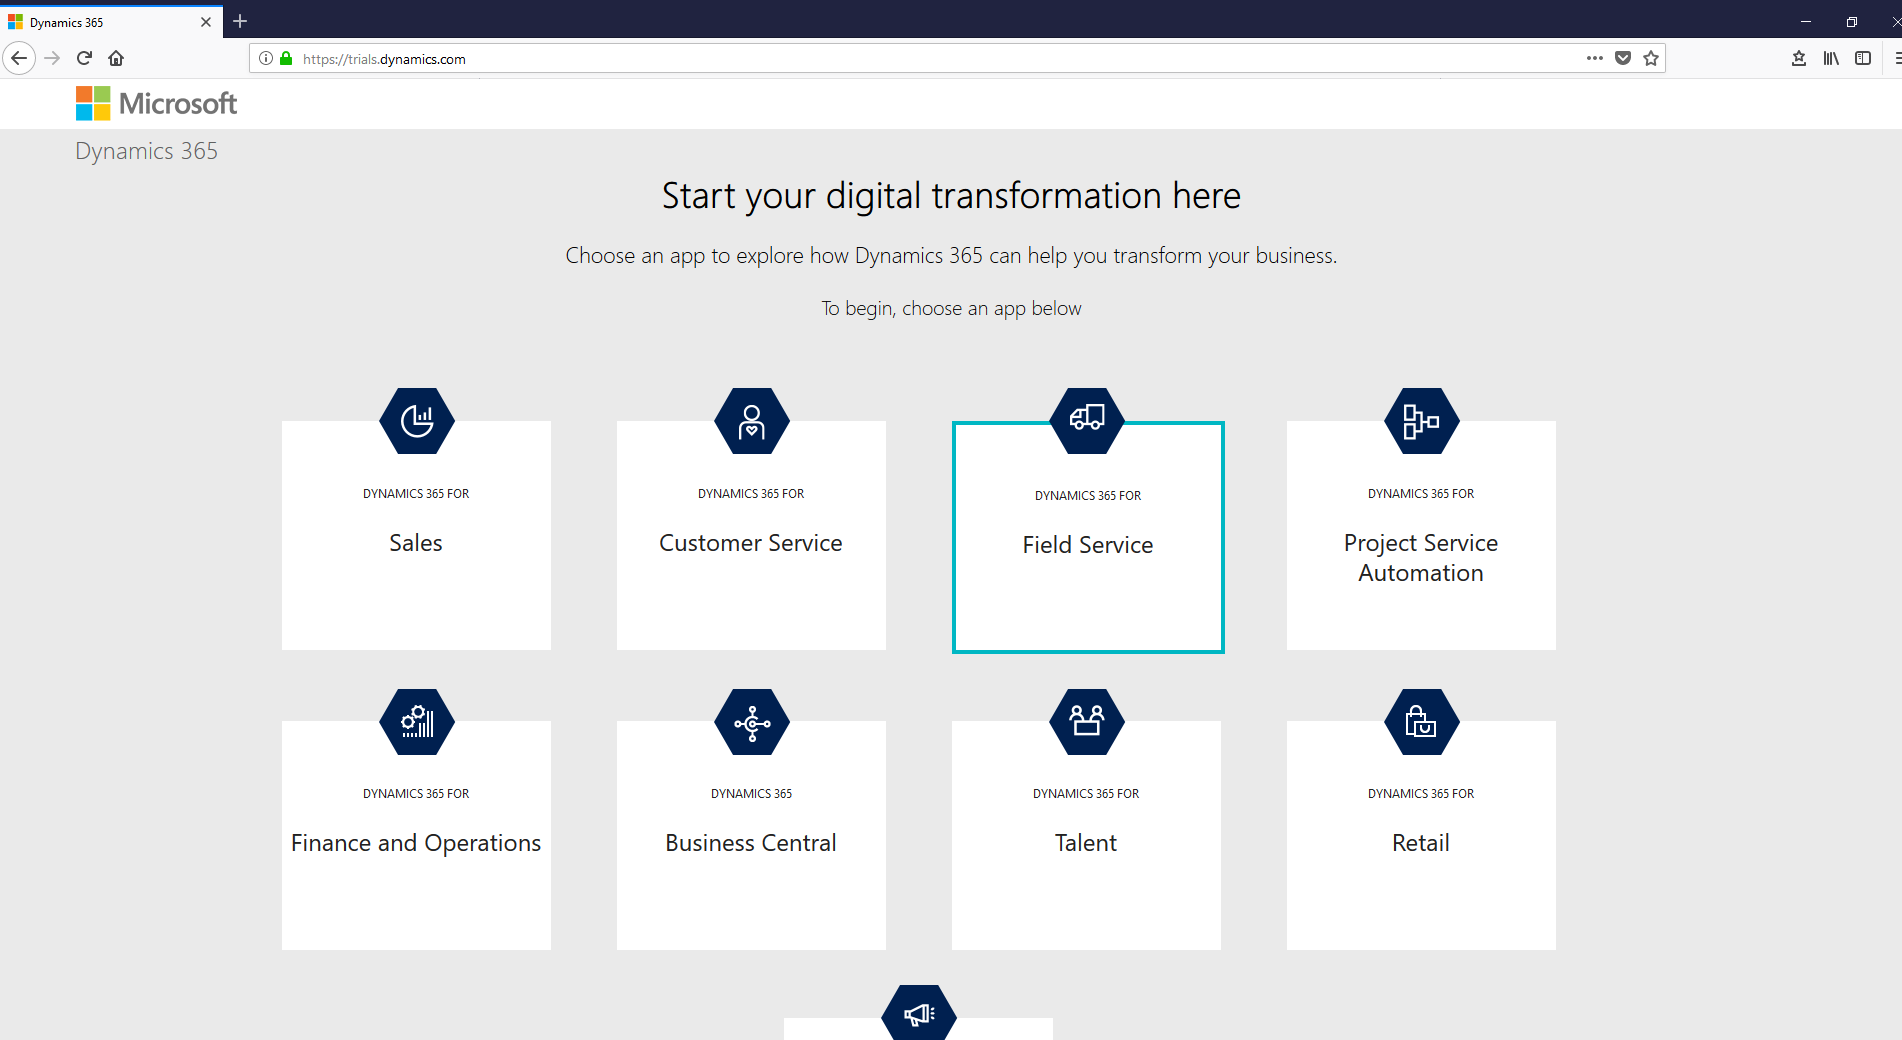 Install Dynamics 365 for Field Service (Dynamics 365 for Field